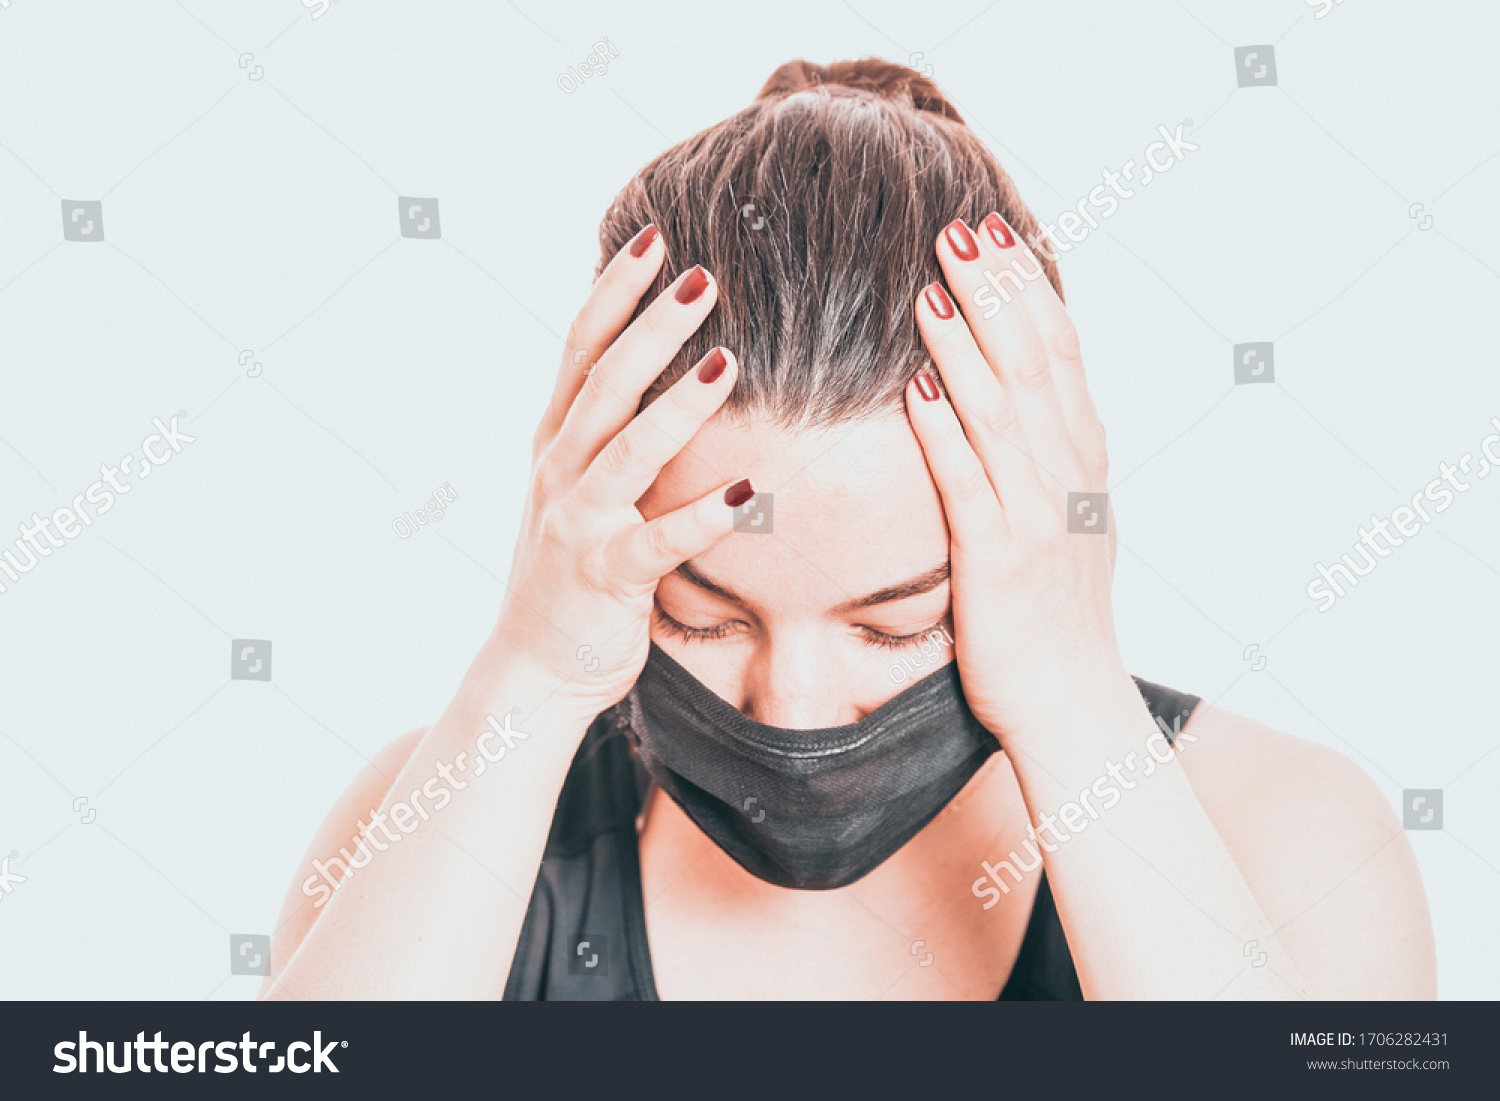 Worried, scare, panicked american woman in medical mask, concerned about viral pandemic illness, paranoid of pandemic. #1706282431